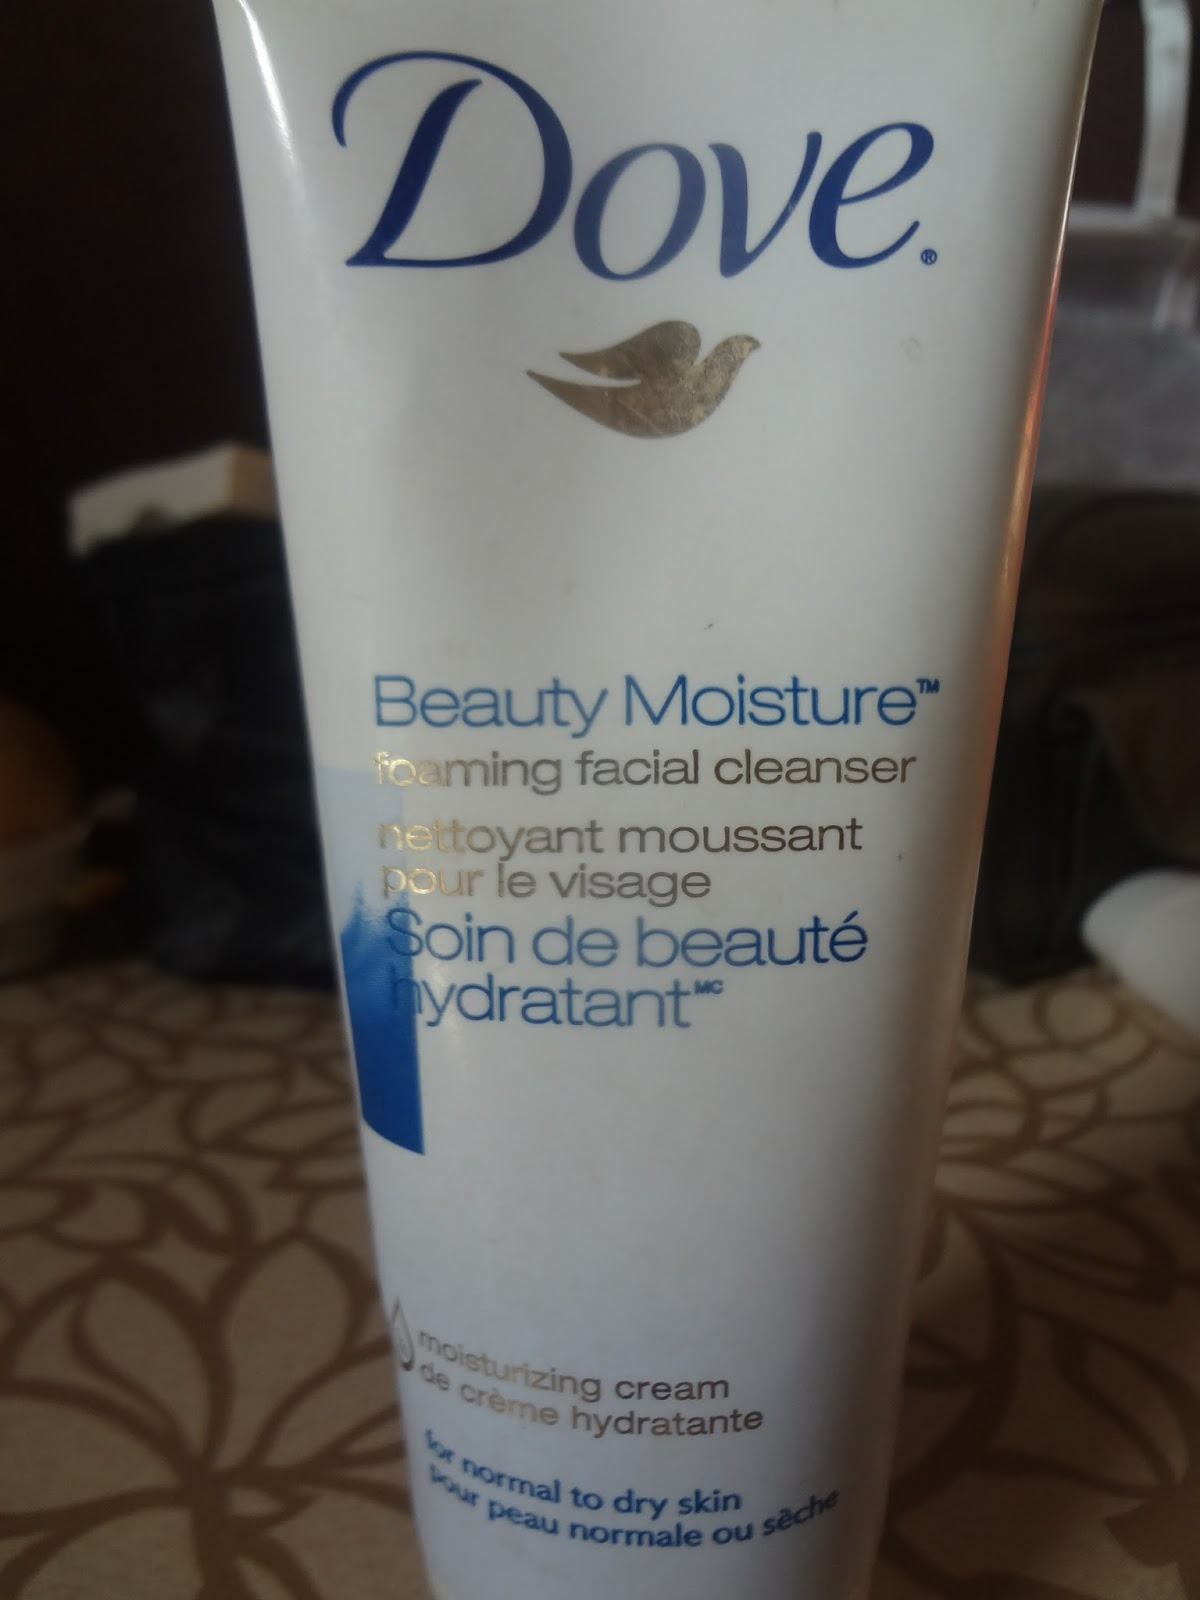 Dove foaming facial cleanser that you